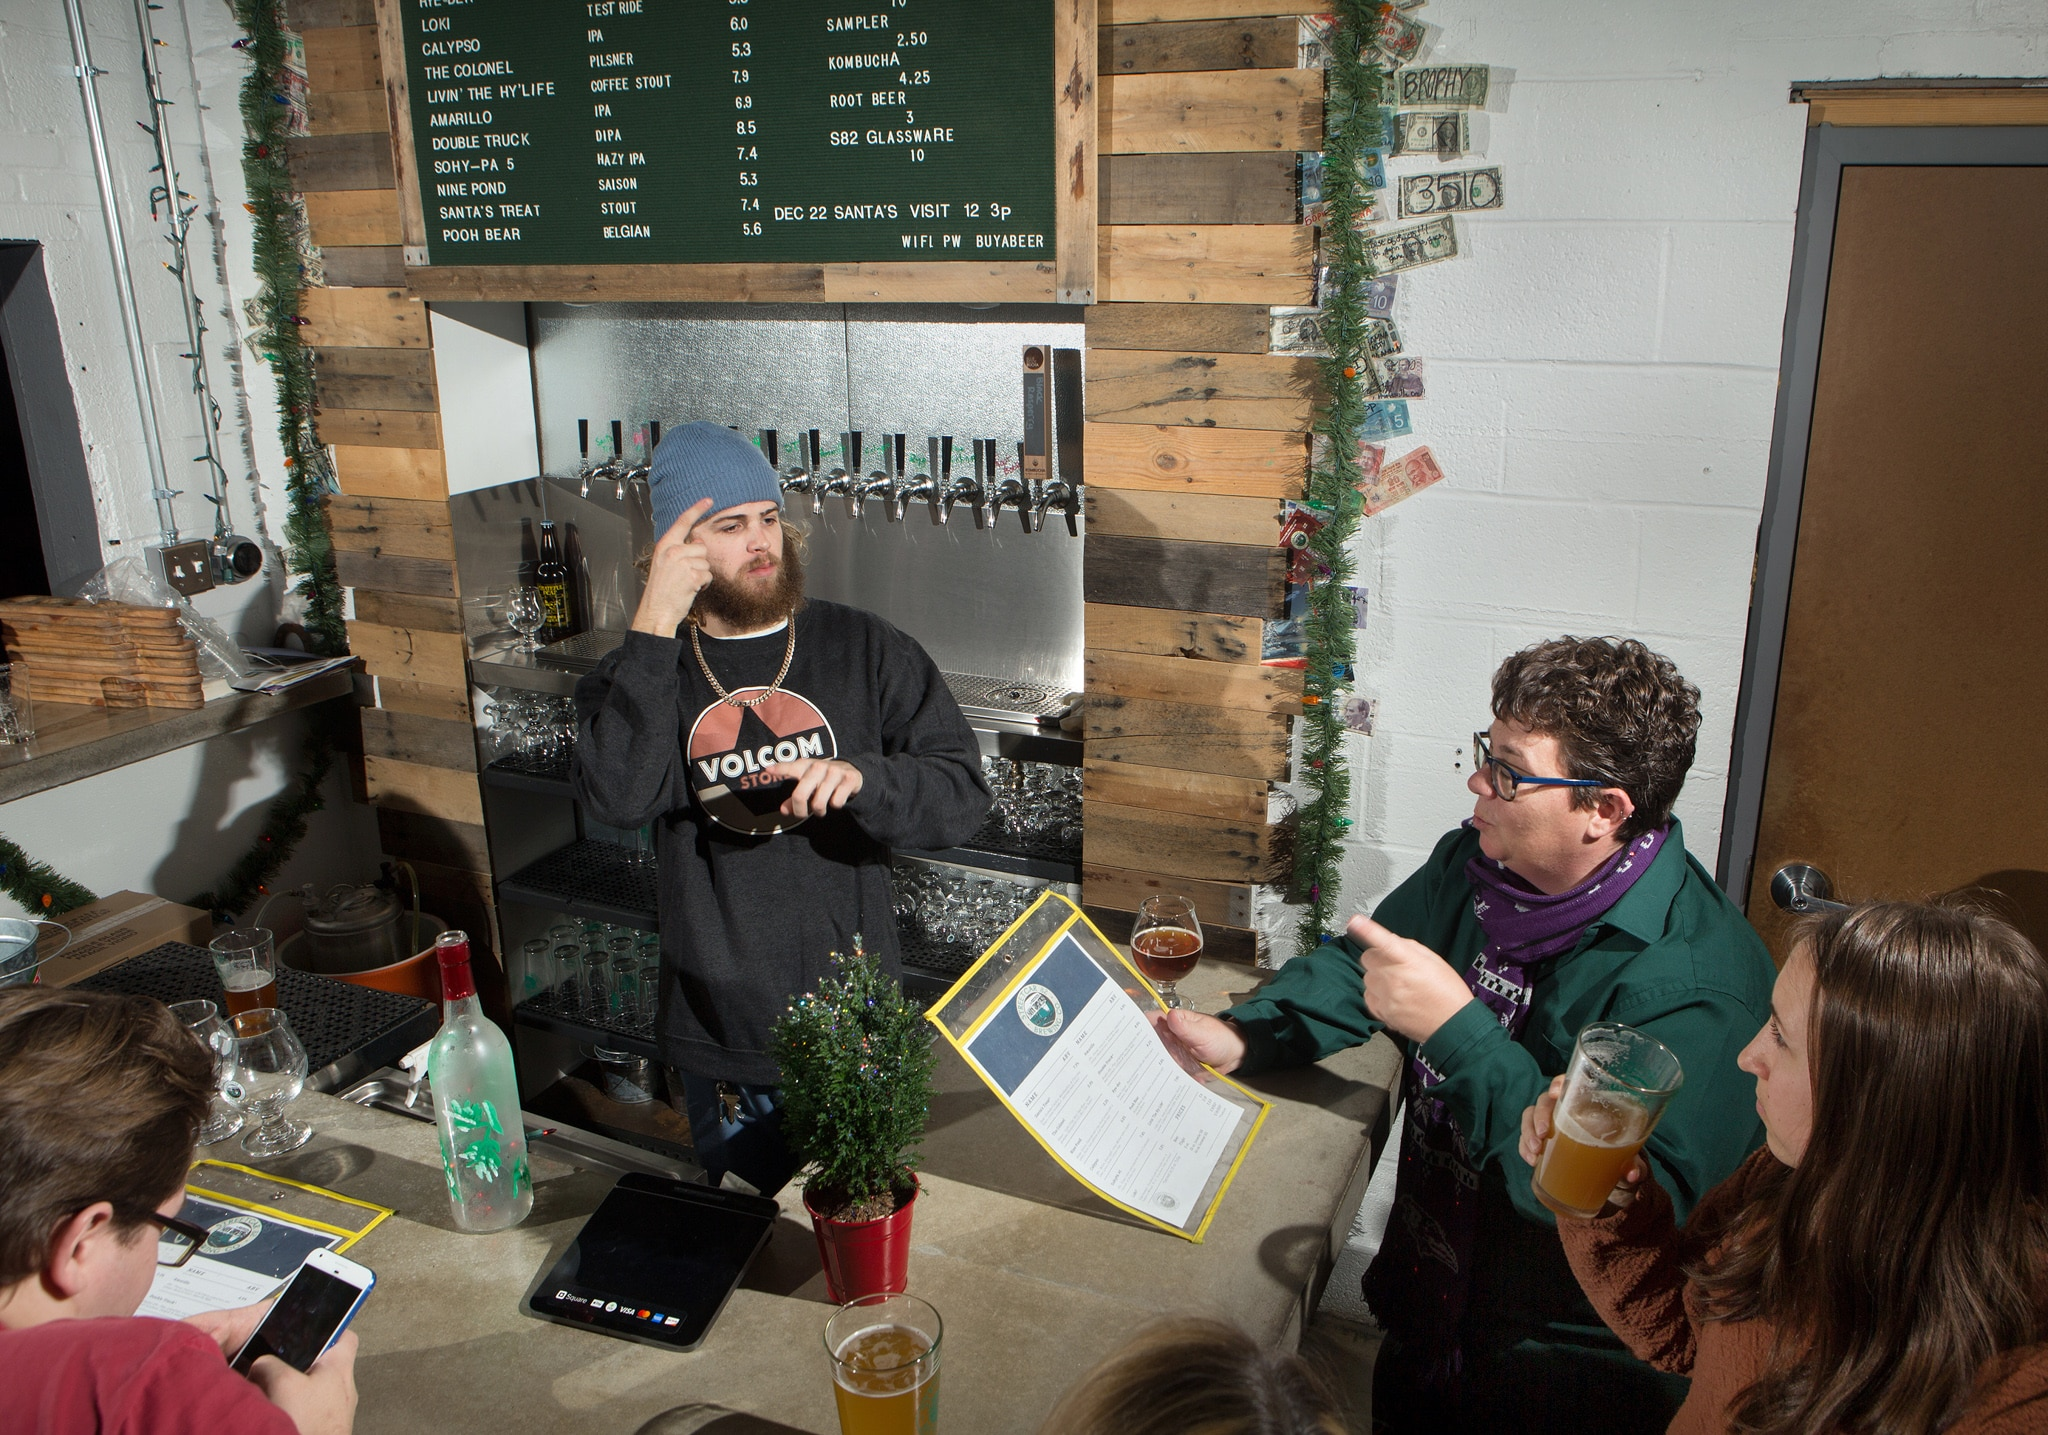 Patrons using sign language to converse with bartender (State Dept./D.A. Peterson)